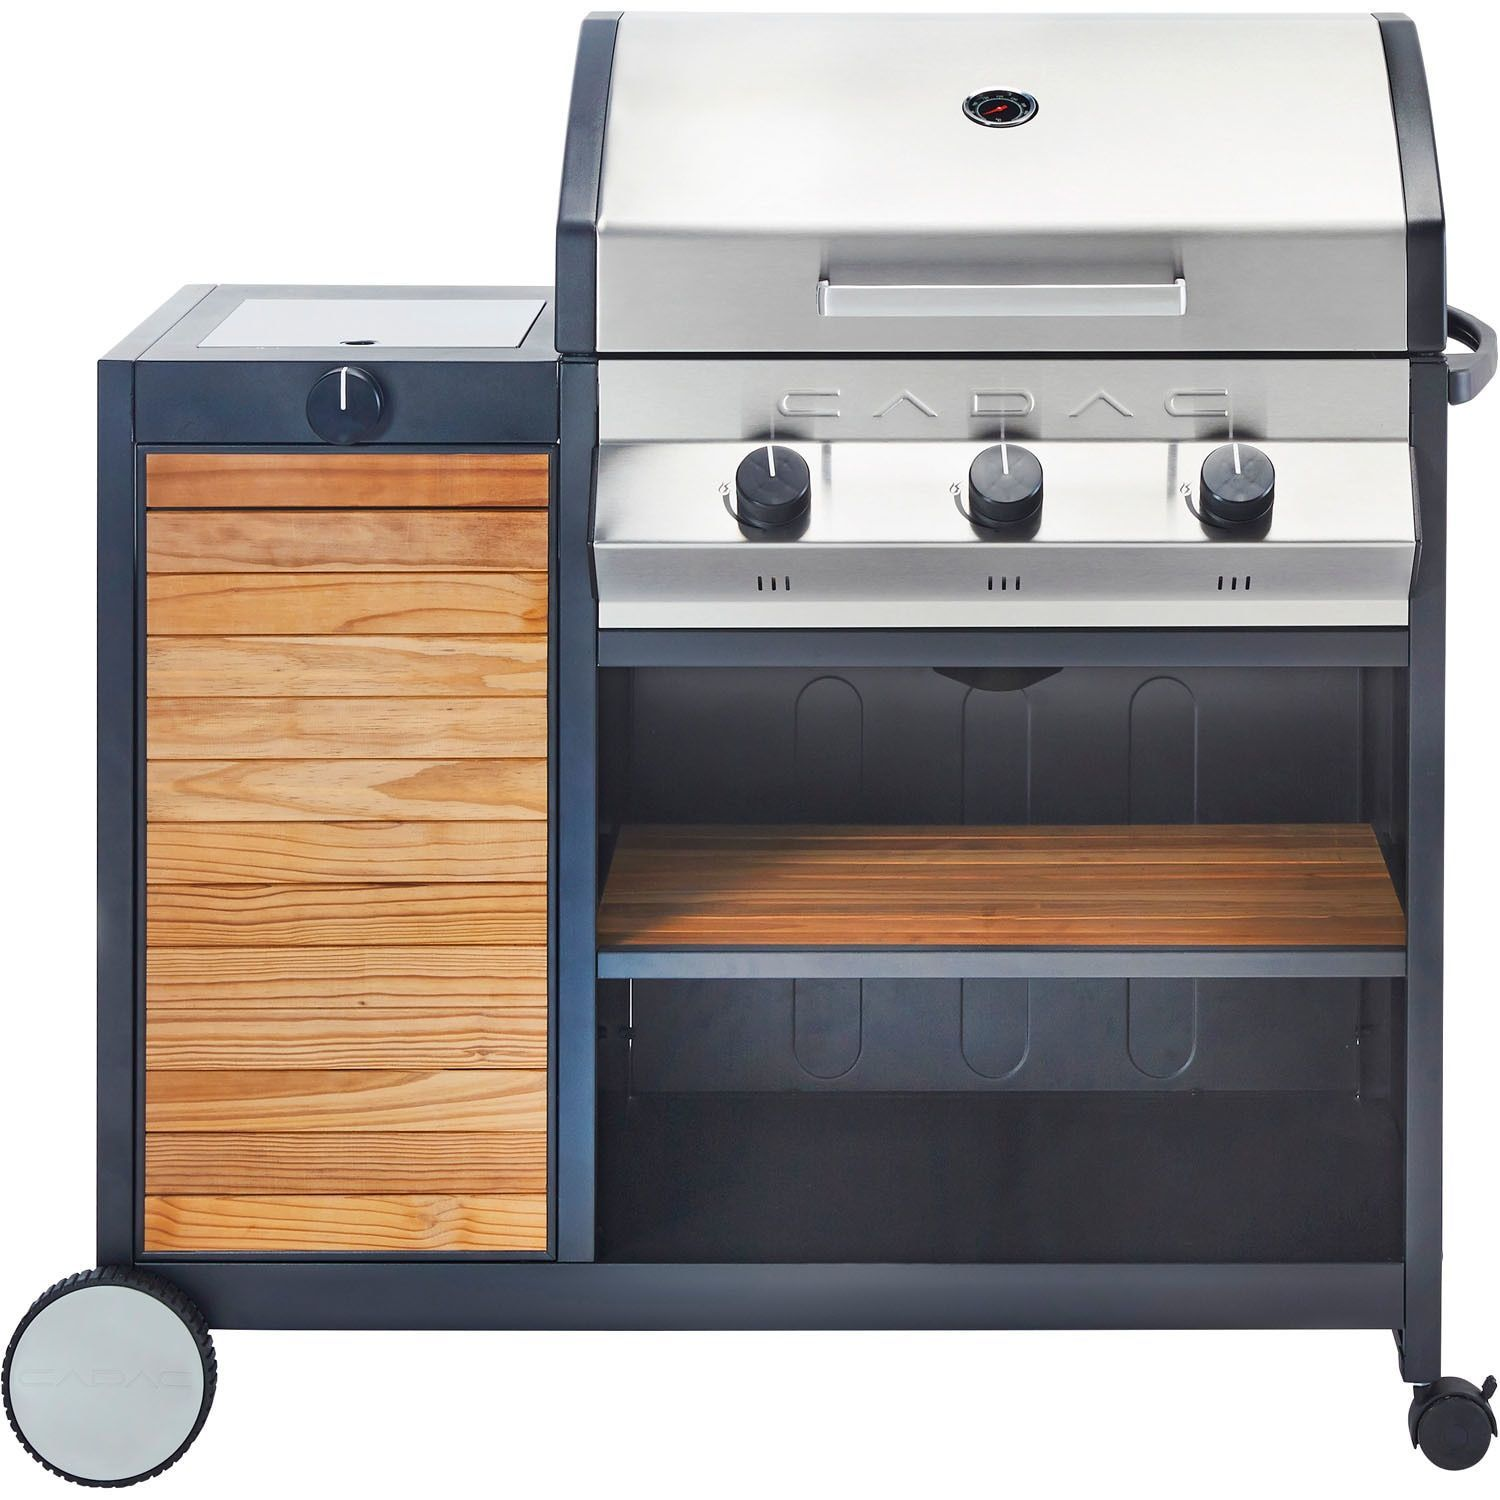 Lovely Weber Grills Home Depot Vs Lowes